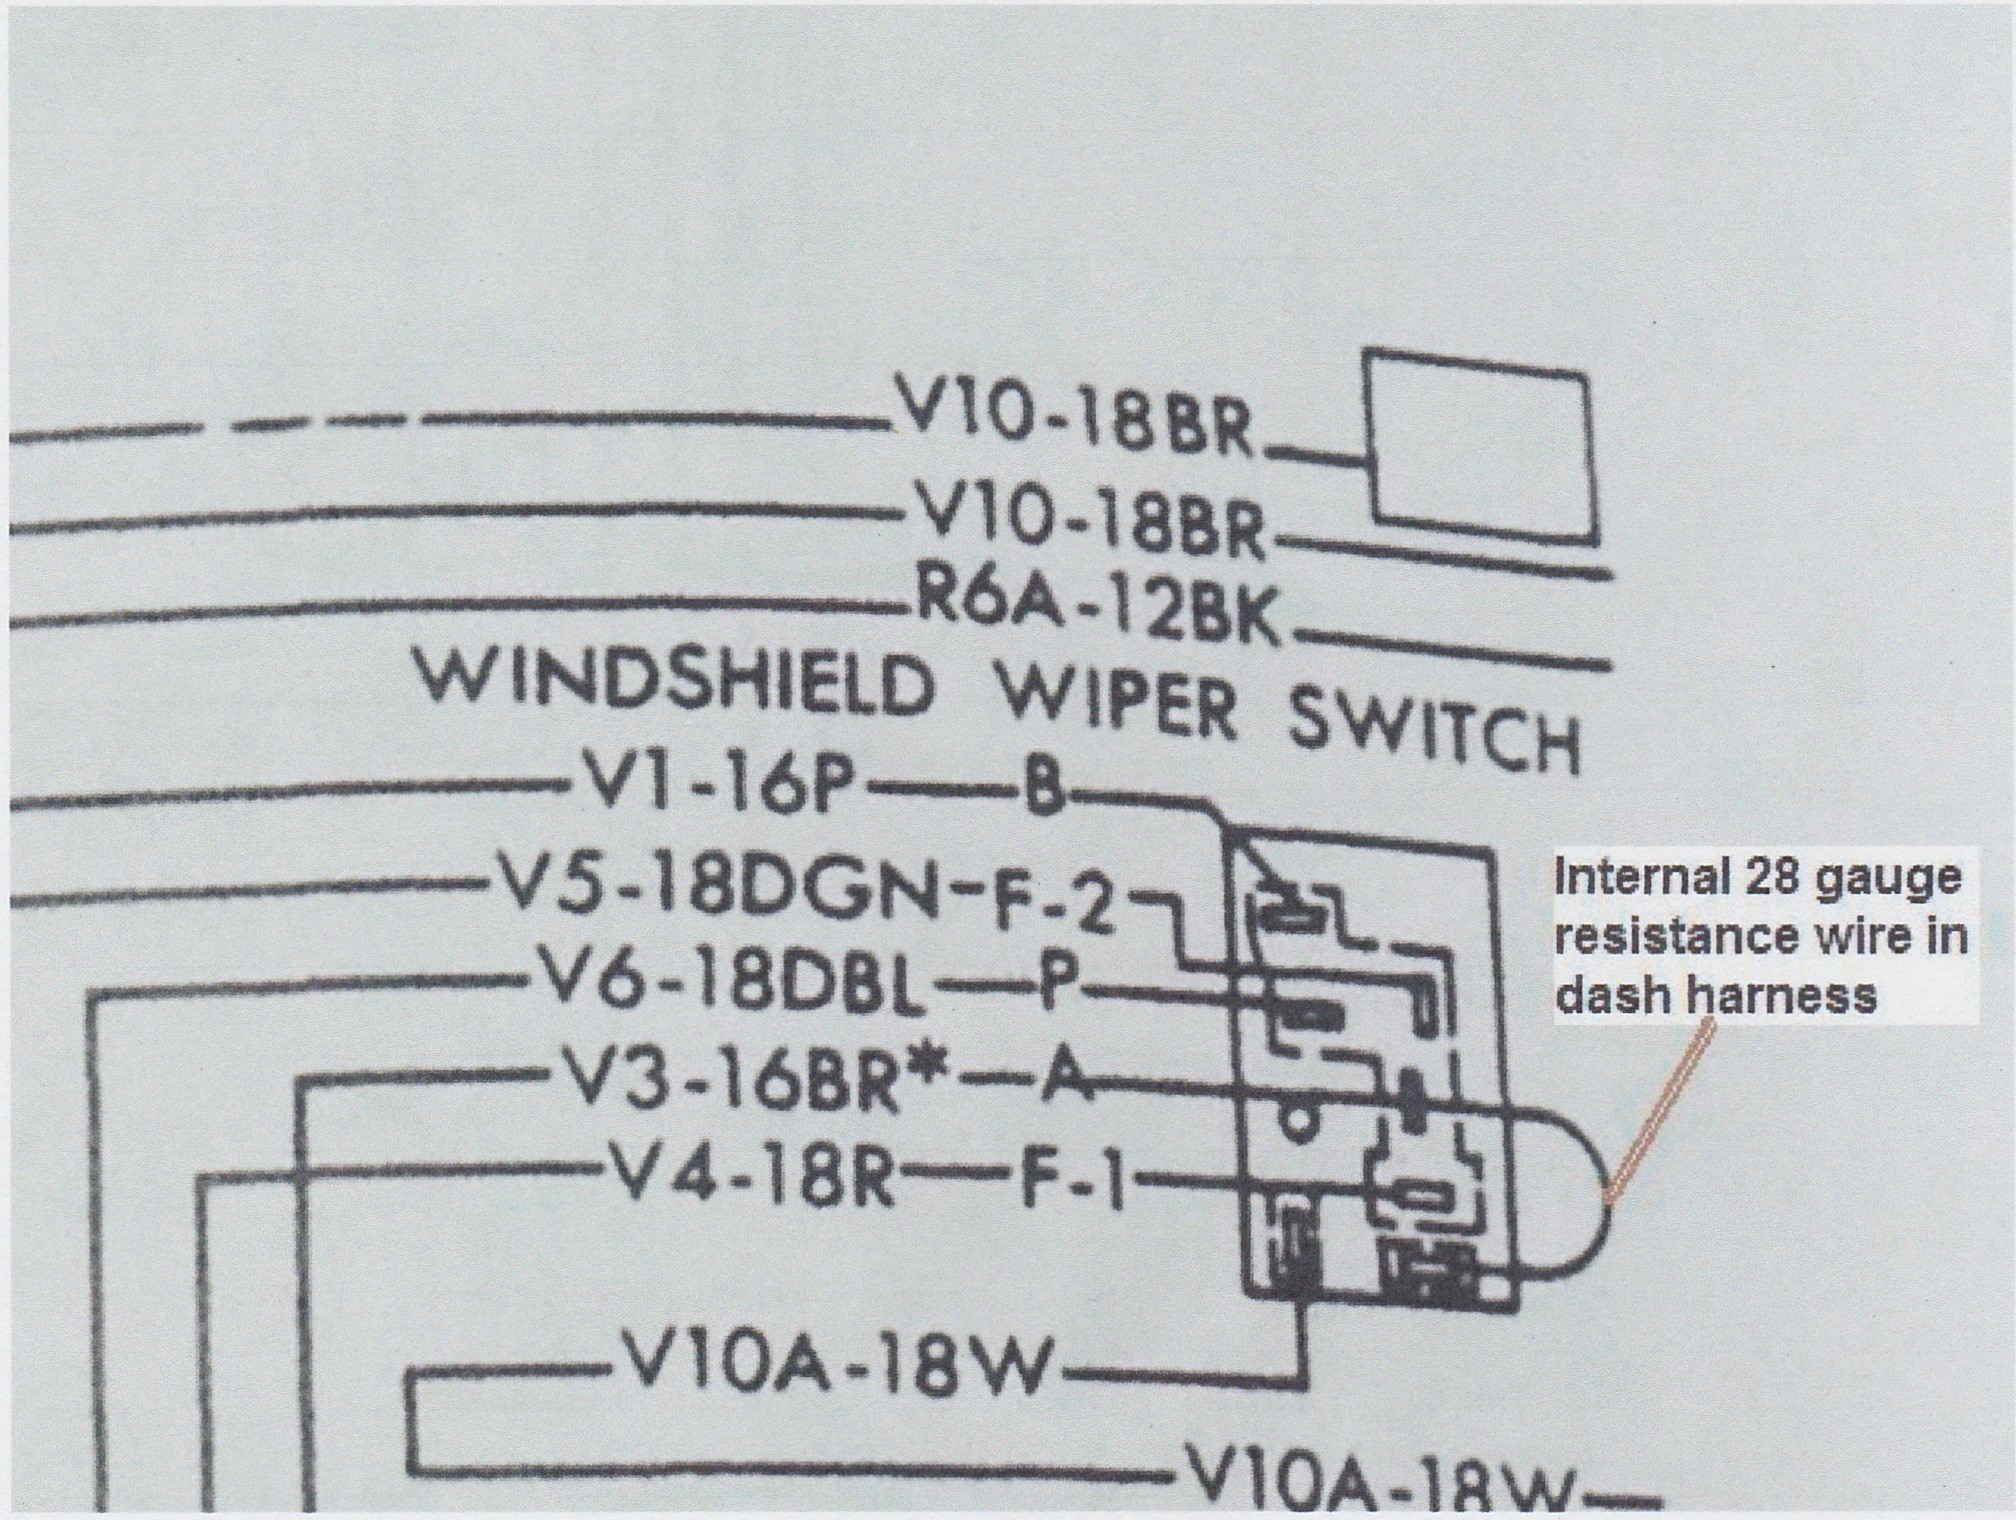 Plymouth Valiant Ignition Diagram besides Mopar Wiring Diagram 1974 Dodge Truck additionally Scion Tc Wiring Schematic together with Schematics i as well 496610 69 Mustang Needs Vacuum Diagram. on 1970 dodge charger dash wiring